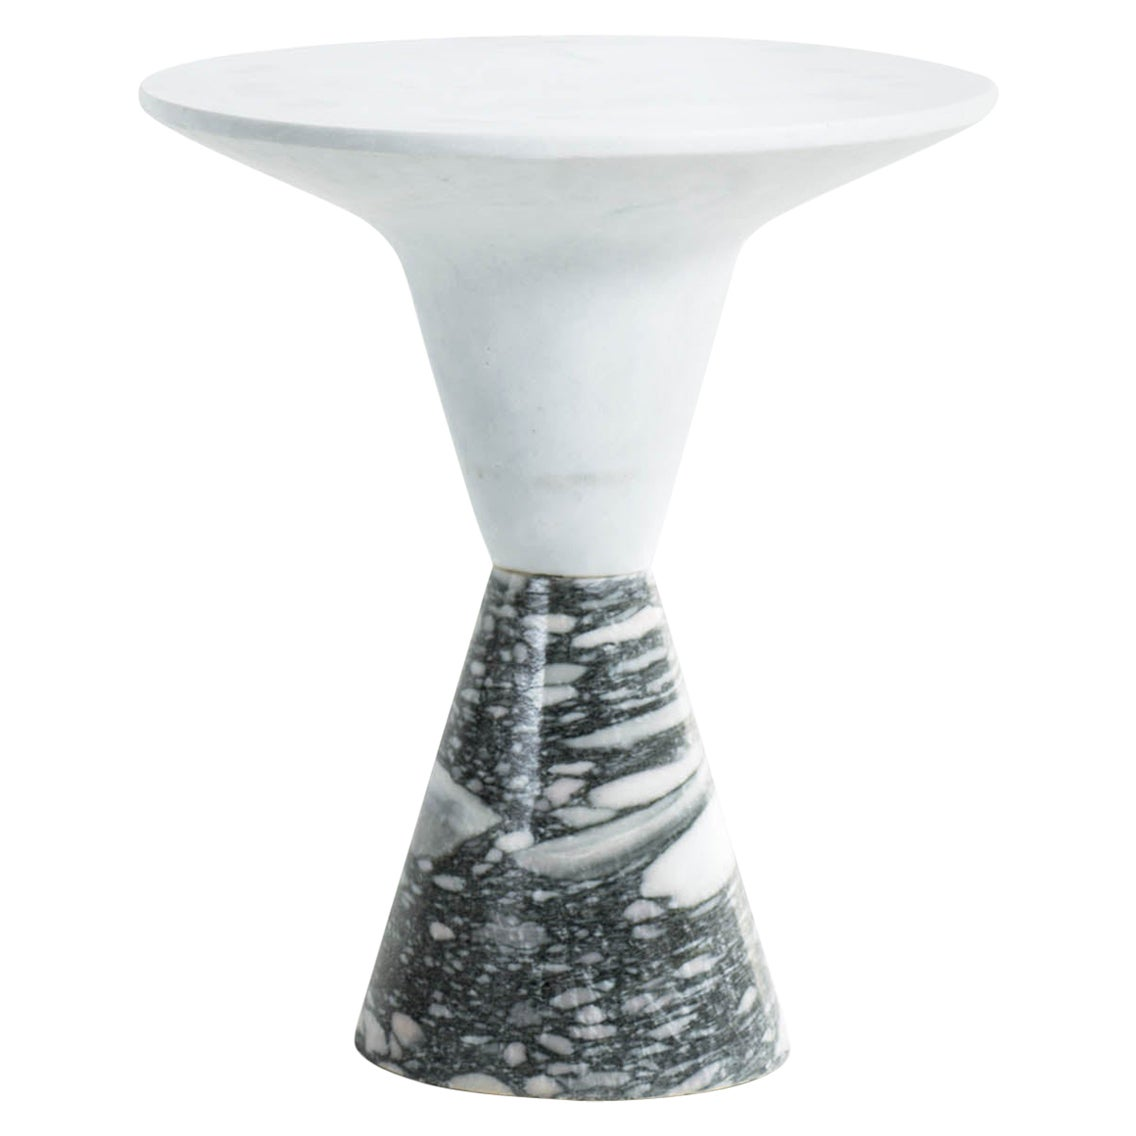 DeMarco Side Table or End Table with White Marble Top and Green Marble Base